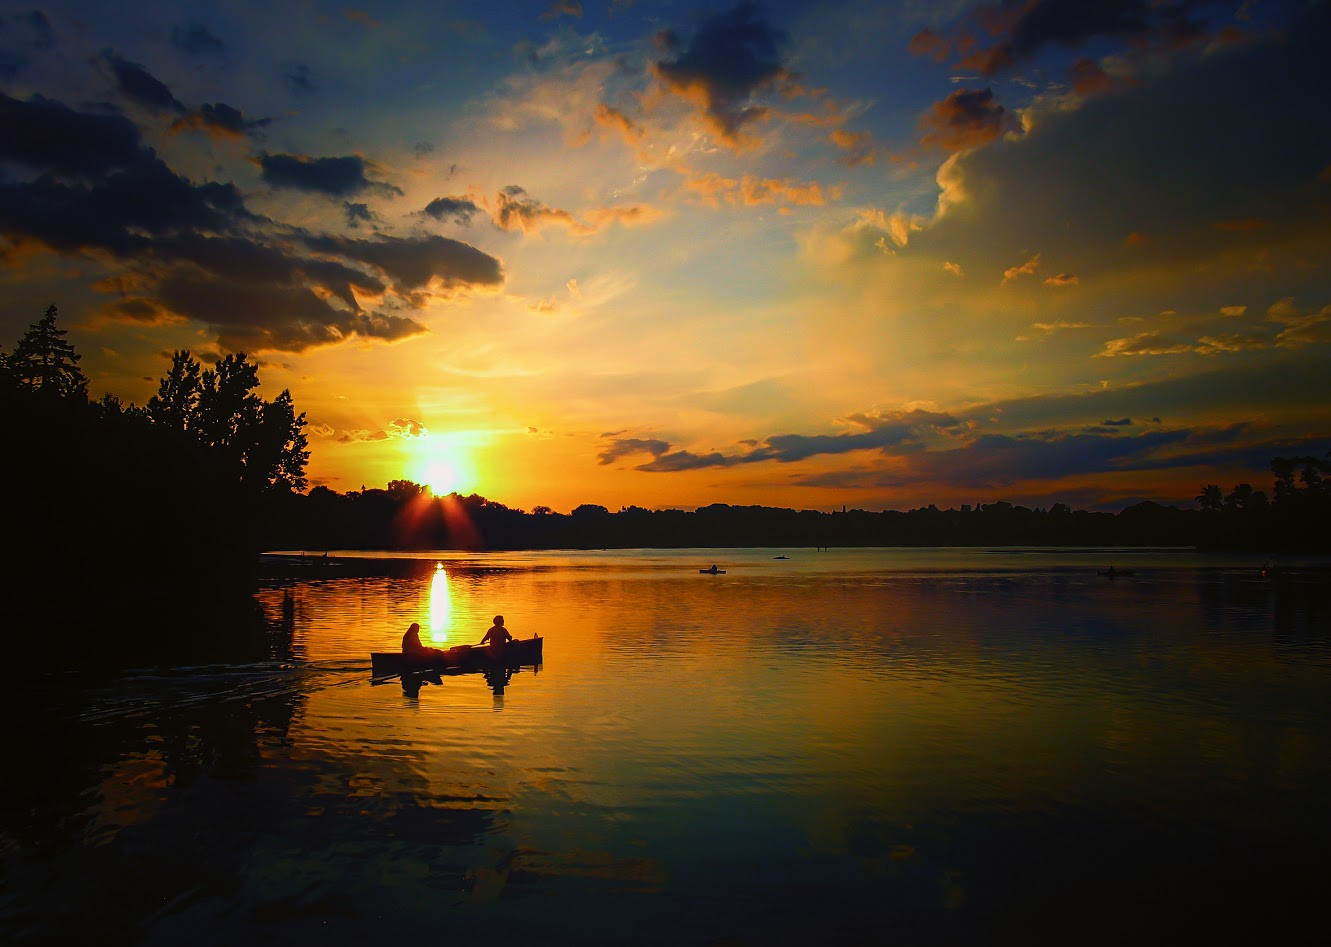 Mike Joslin's photo of two people canoeing at sunset